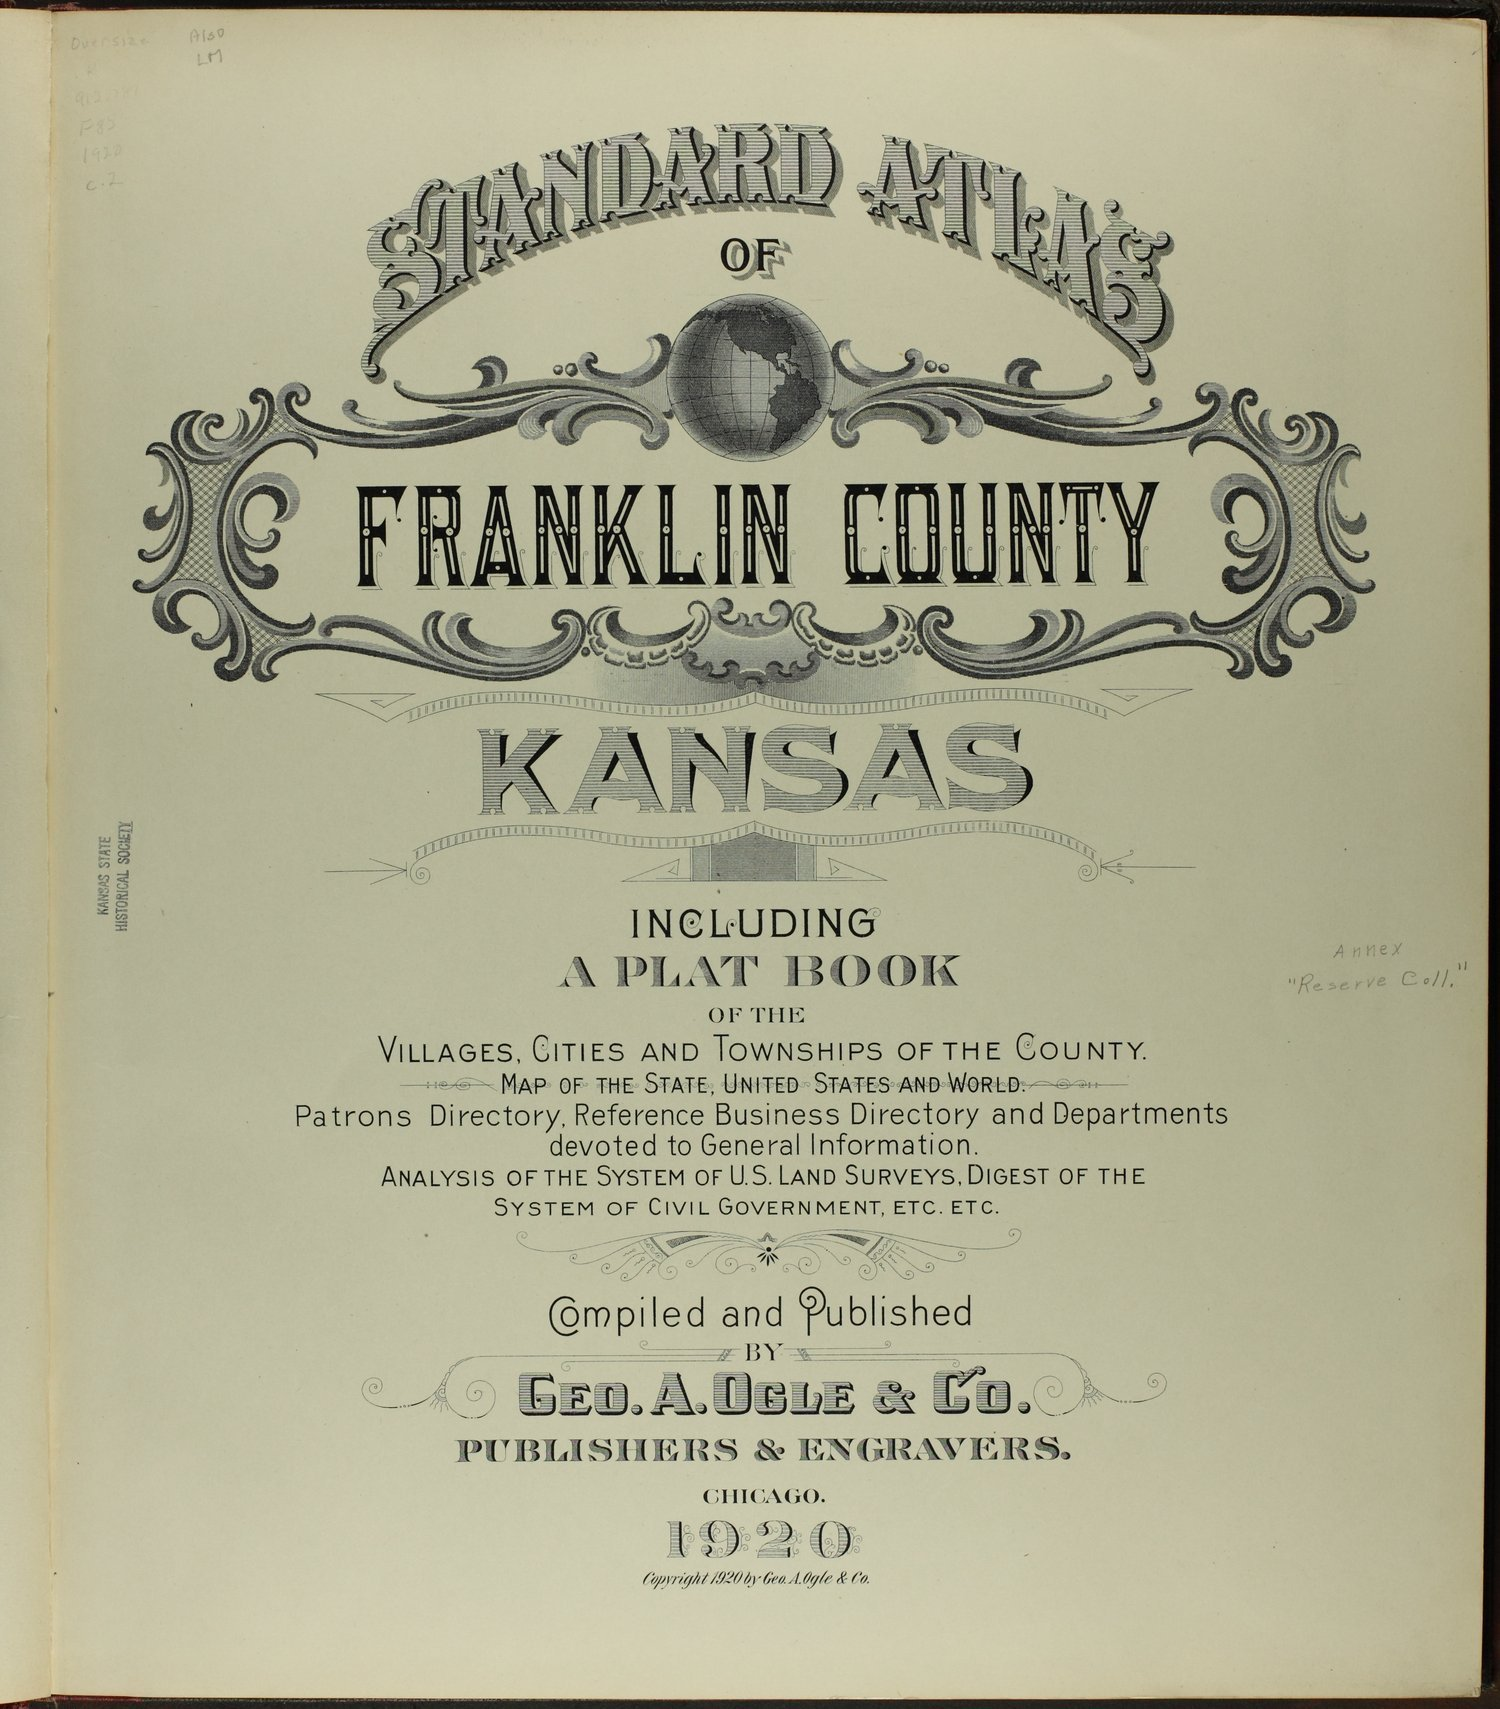 Standard atlas of Franklin County, Kansas - Title Page